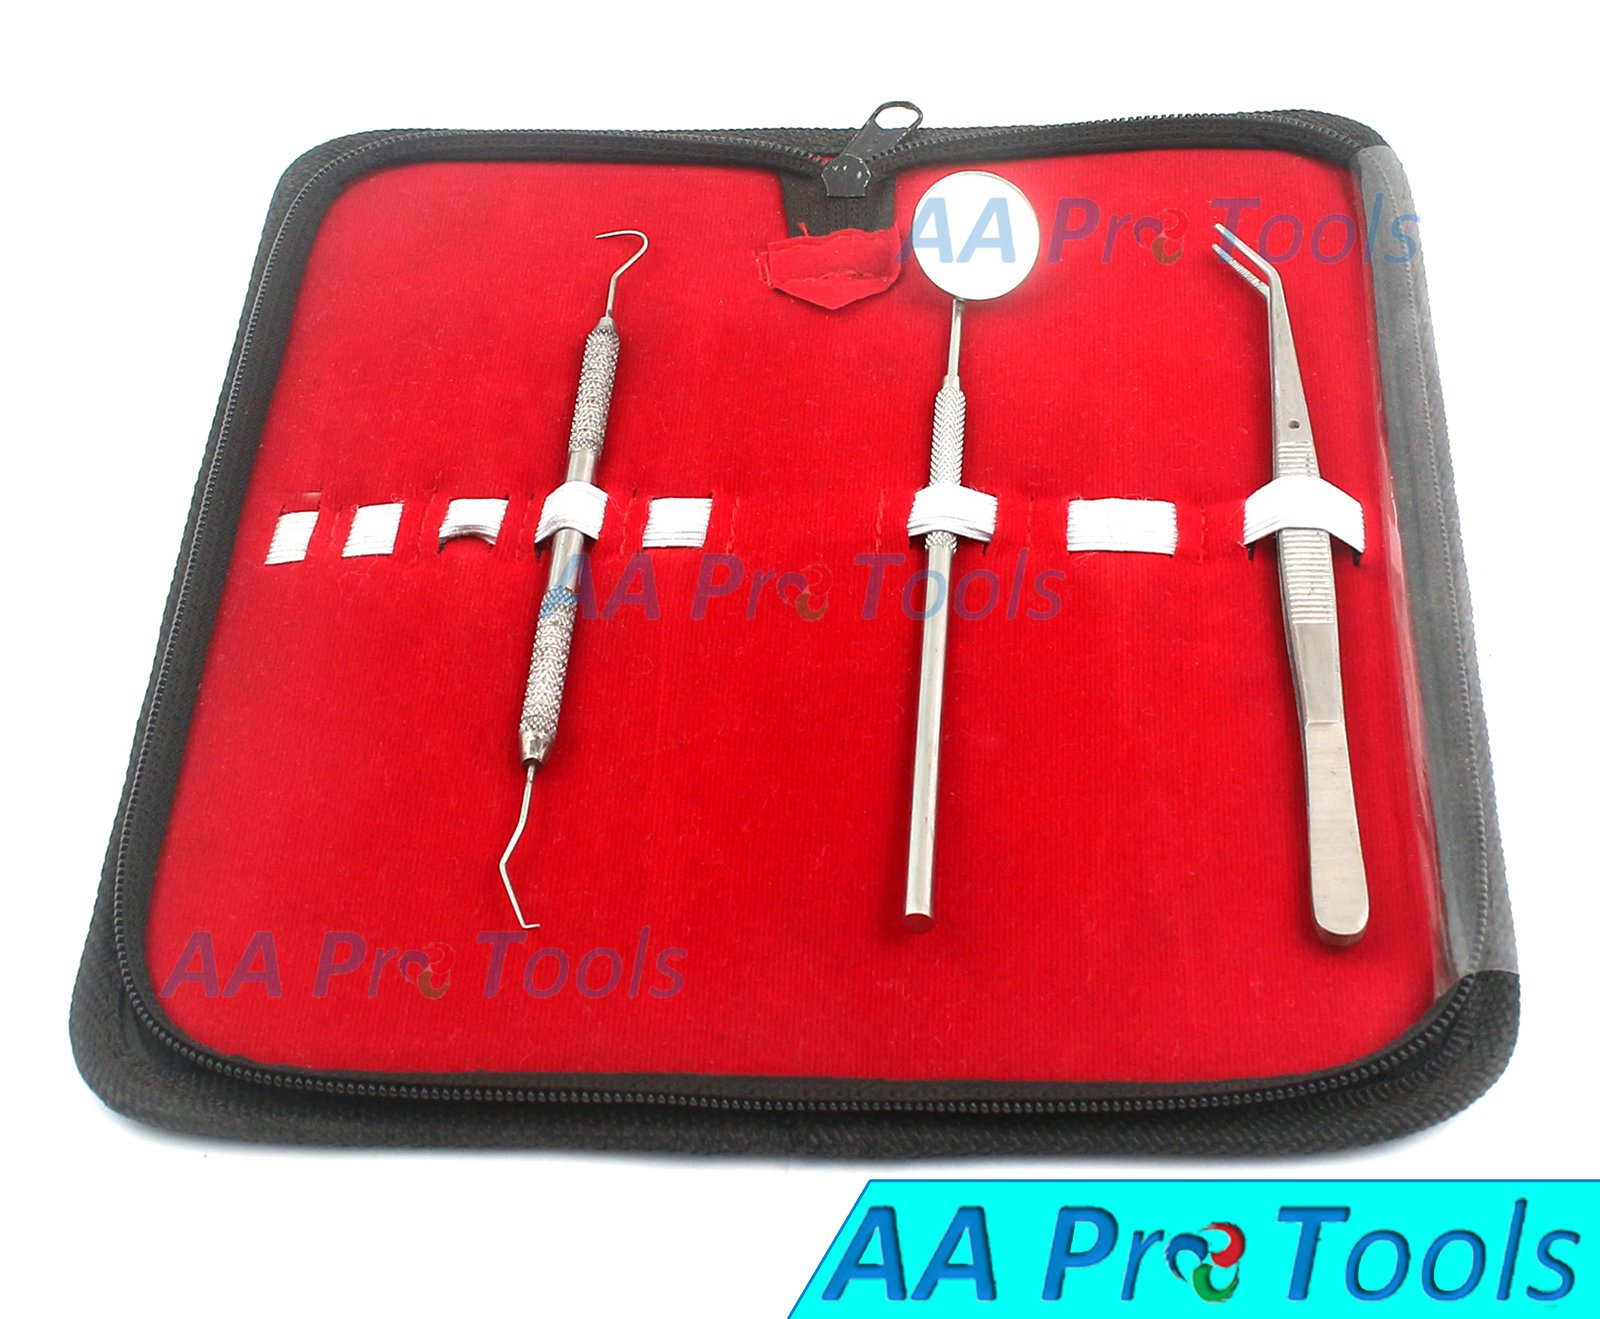 AA PRO 3 PCS DENTAL HYGIENE KIT - INCLUDES DENTAL PICK, ANTI FOG MOUTH MIRROR, TWEEZERS- PROFESSIONAL GRADE DENTIST APPROVED TOOLS A+ QUALITY